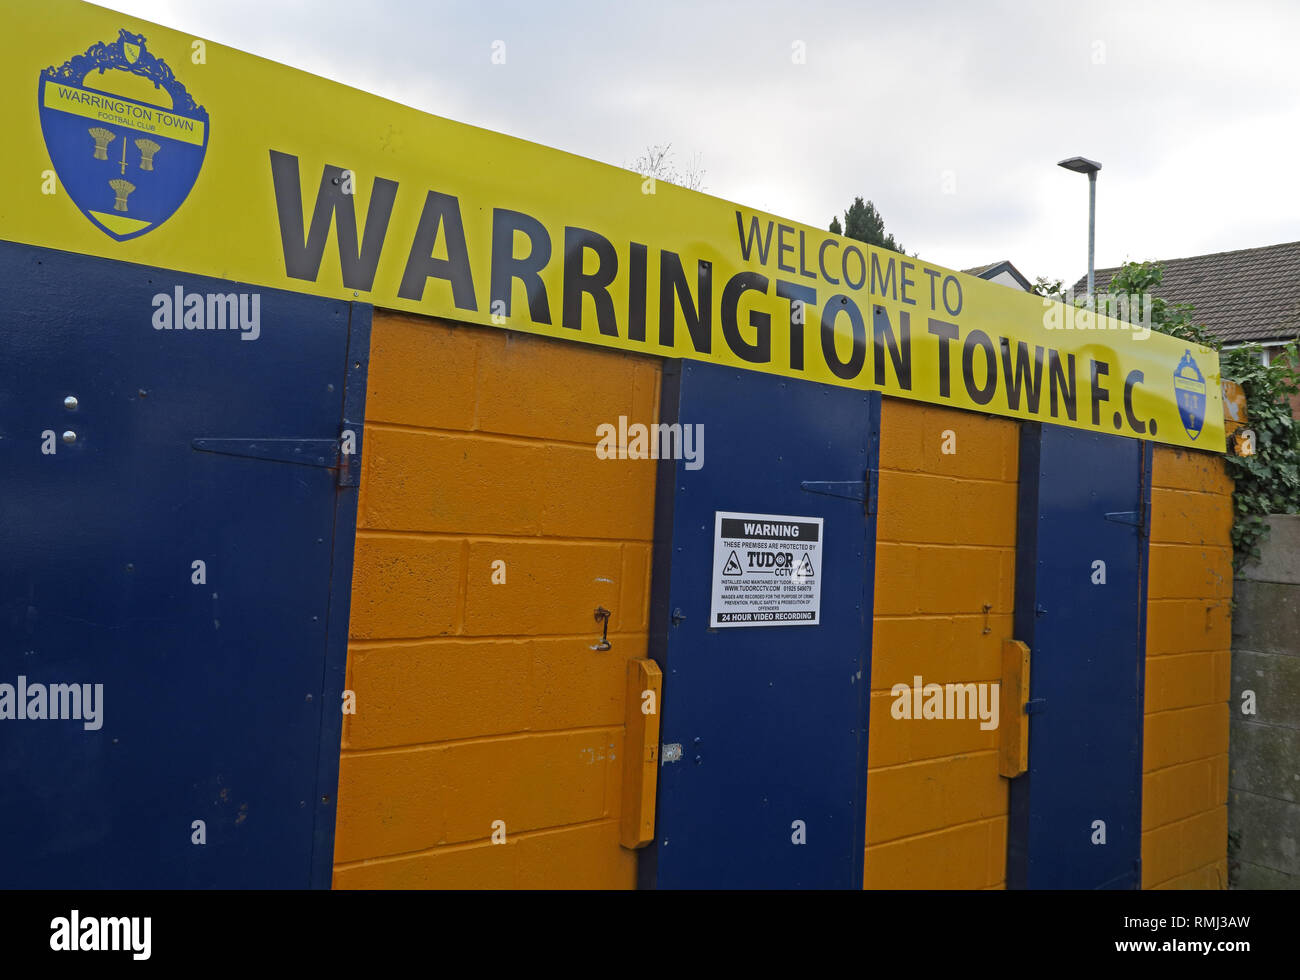 Cantilever Park, Home Ground of Warrington Town Football Club, (Stockton Heath Albion), Common Lane, Latchford, Warrington, Cheshire, WA4 2RS - Stock Image